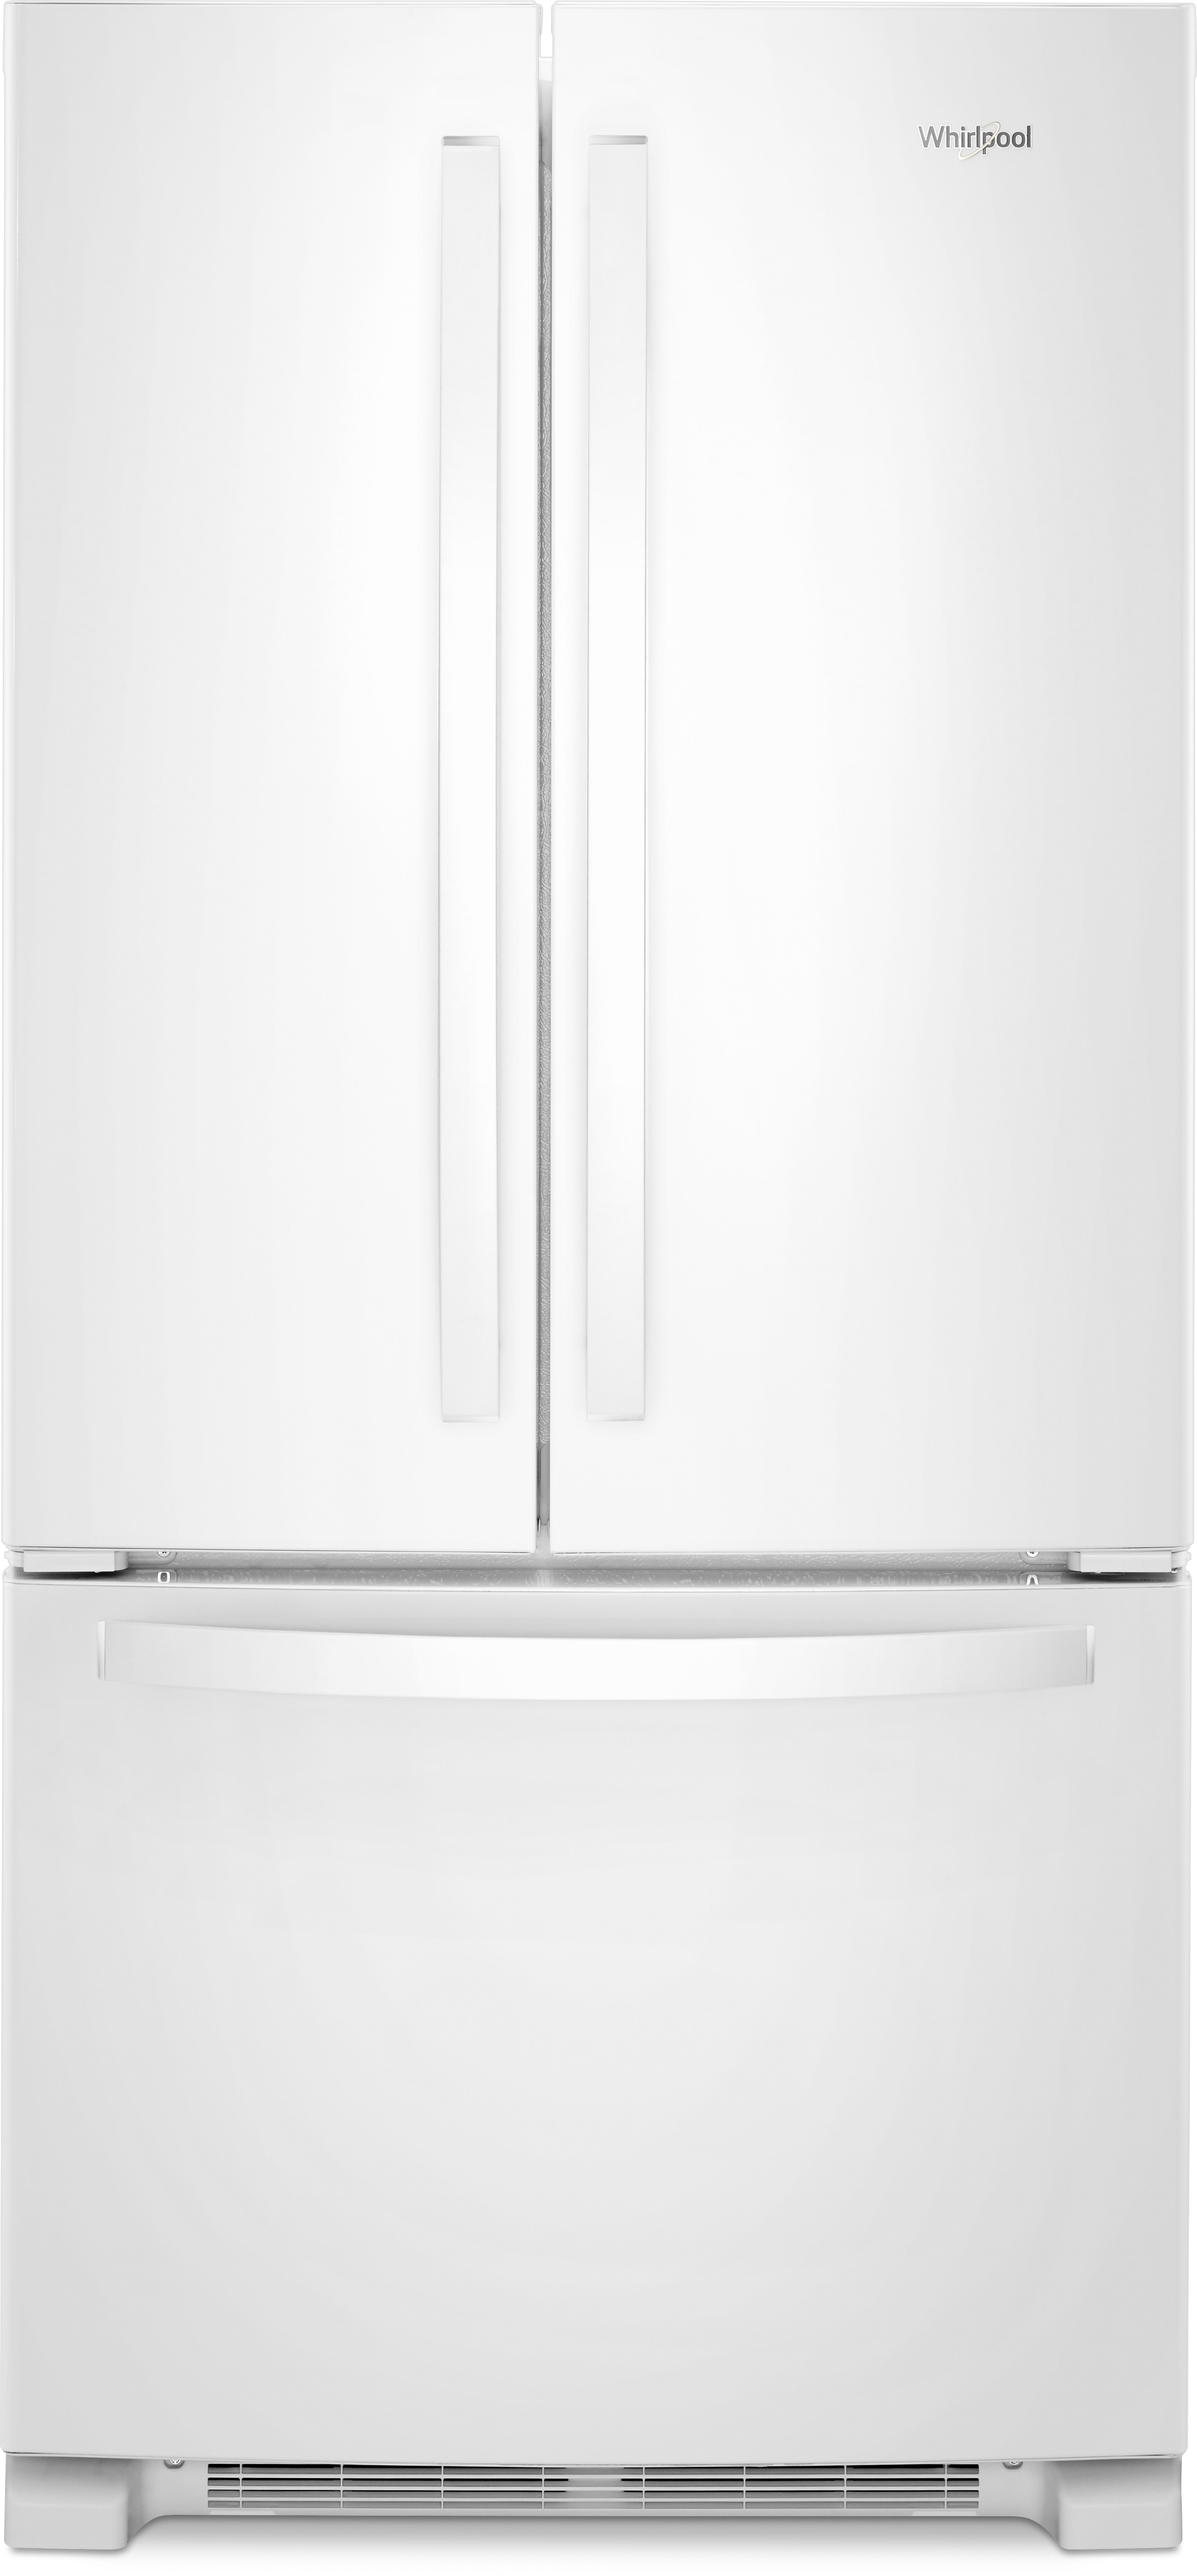 Whirlpool white ice counter depth french door - Whirlpool Refrigerators Buy A Whirlpool Refrigerator Today At Aj Madison